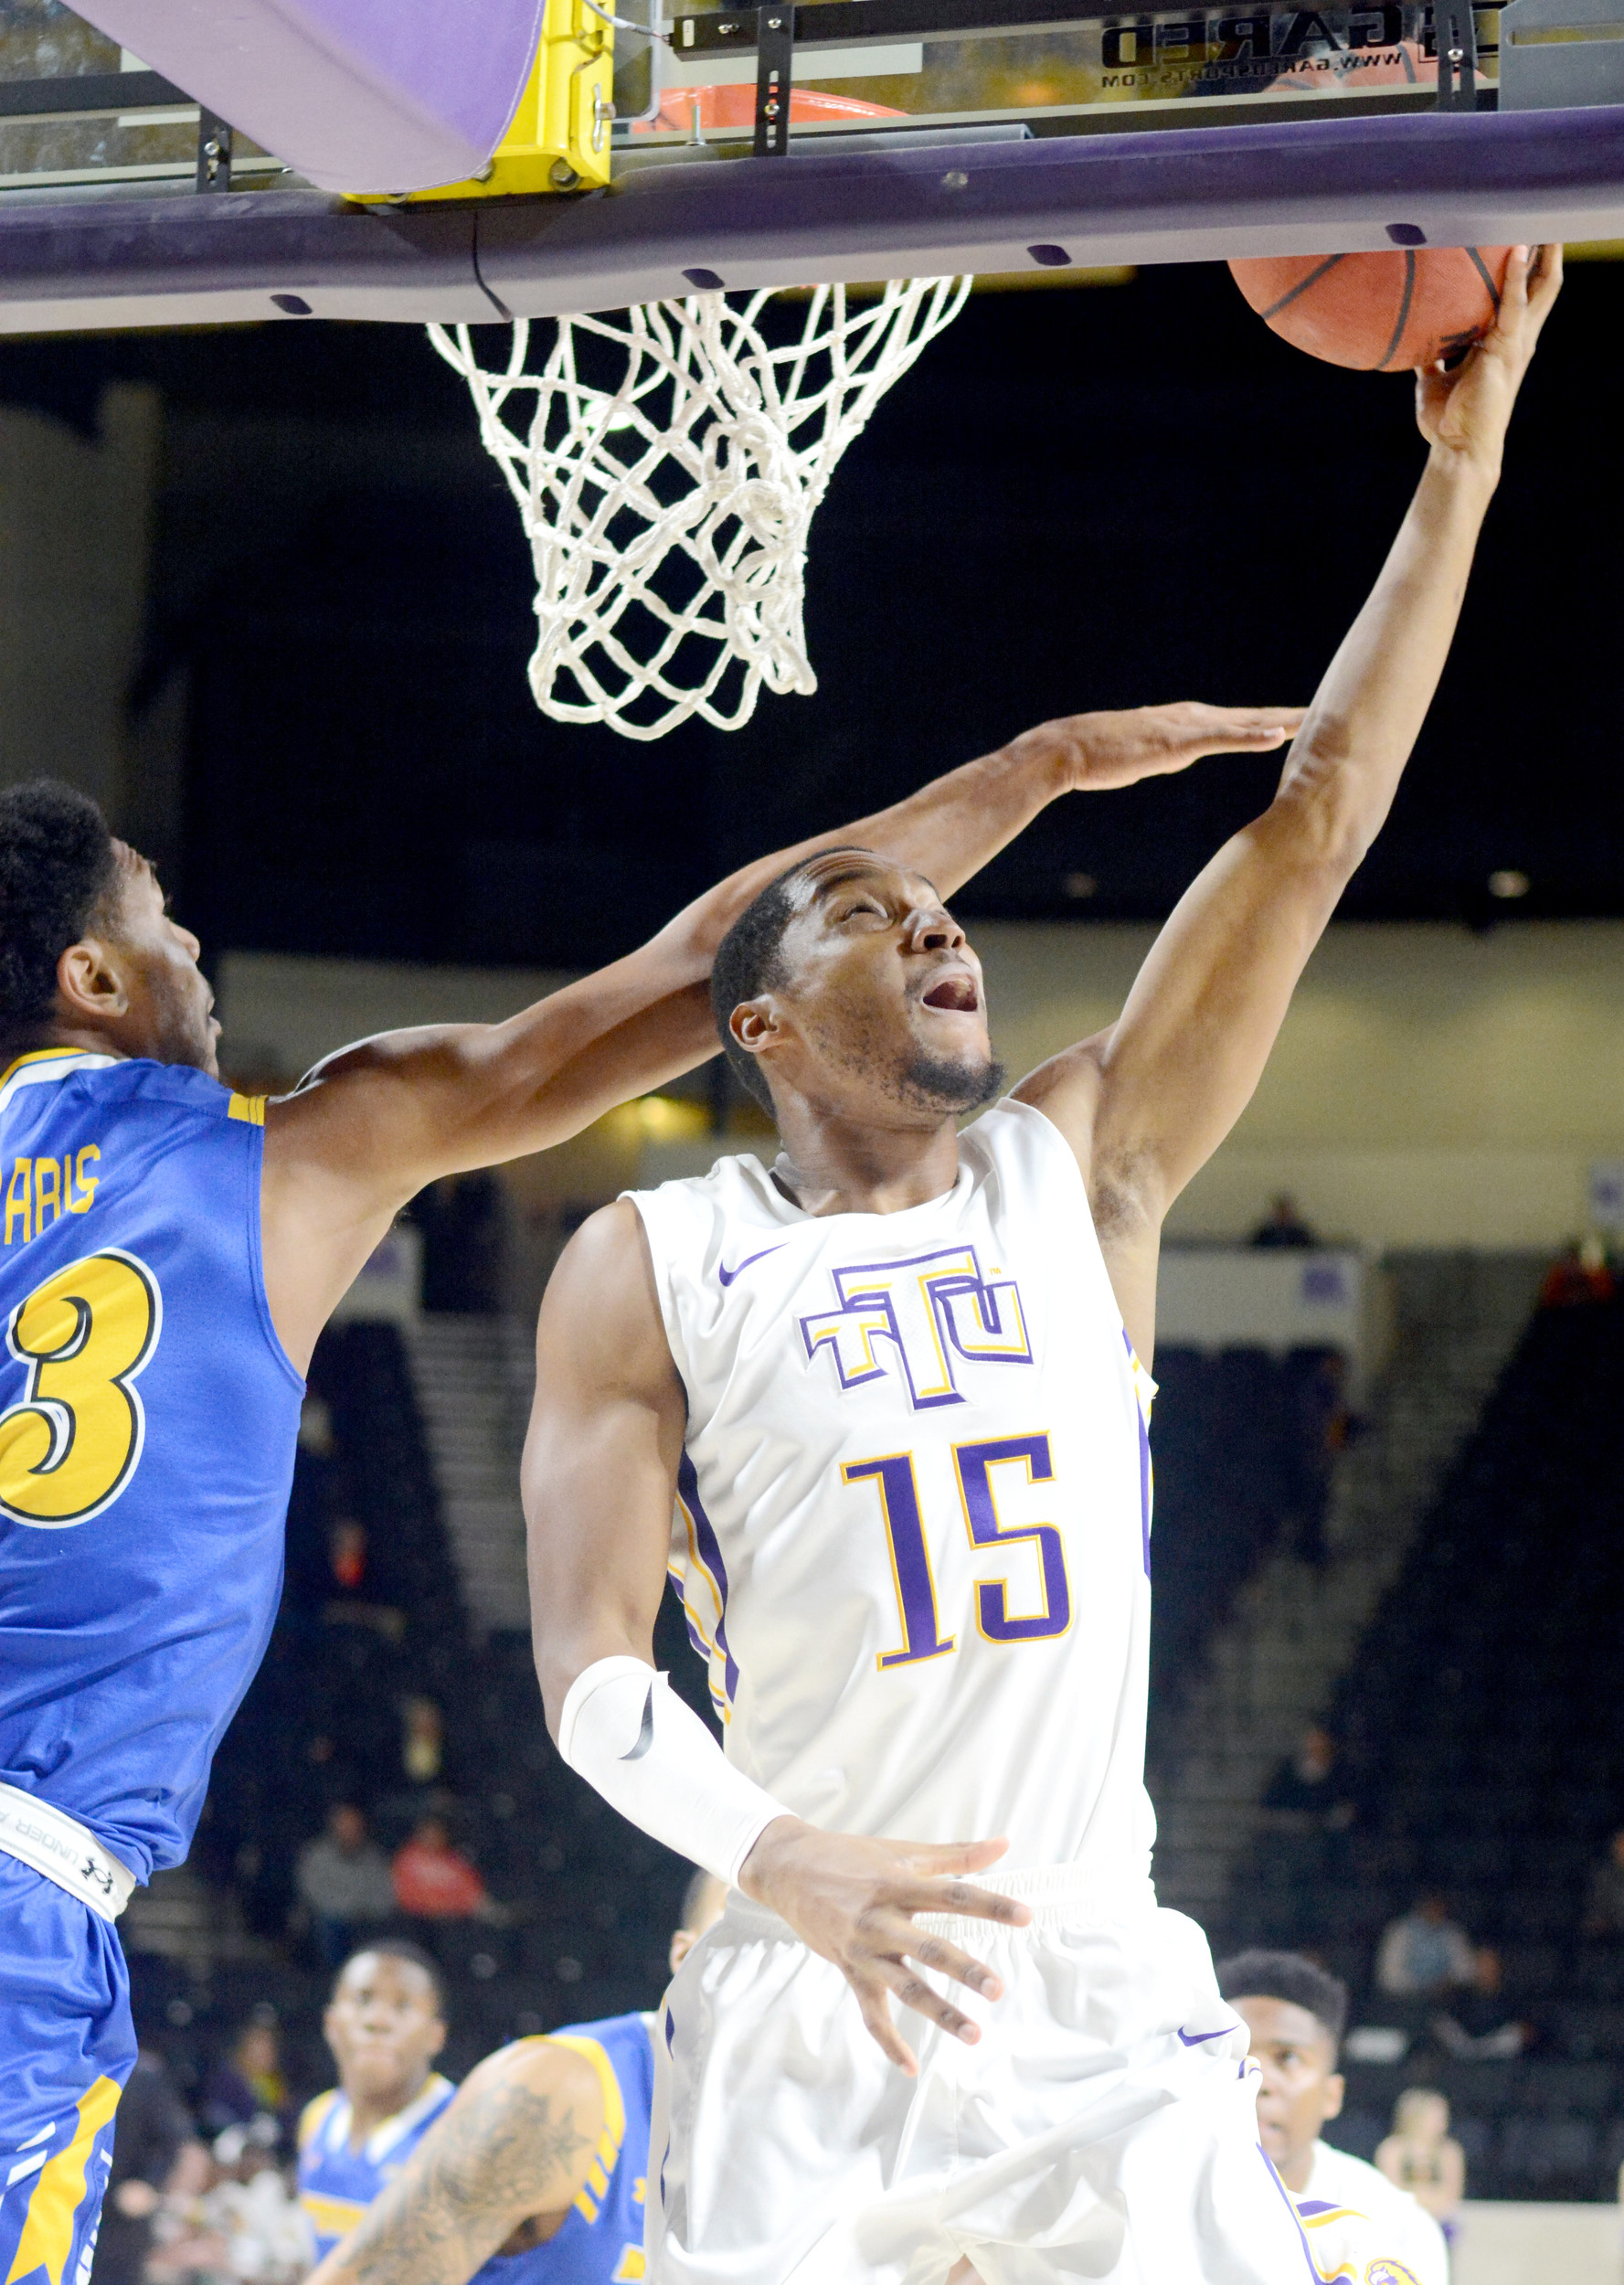 brand new 88d97 55715 TTU's defense holds off Morehead State | Herald Citizen